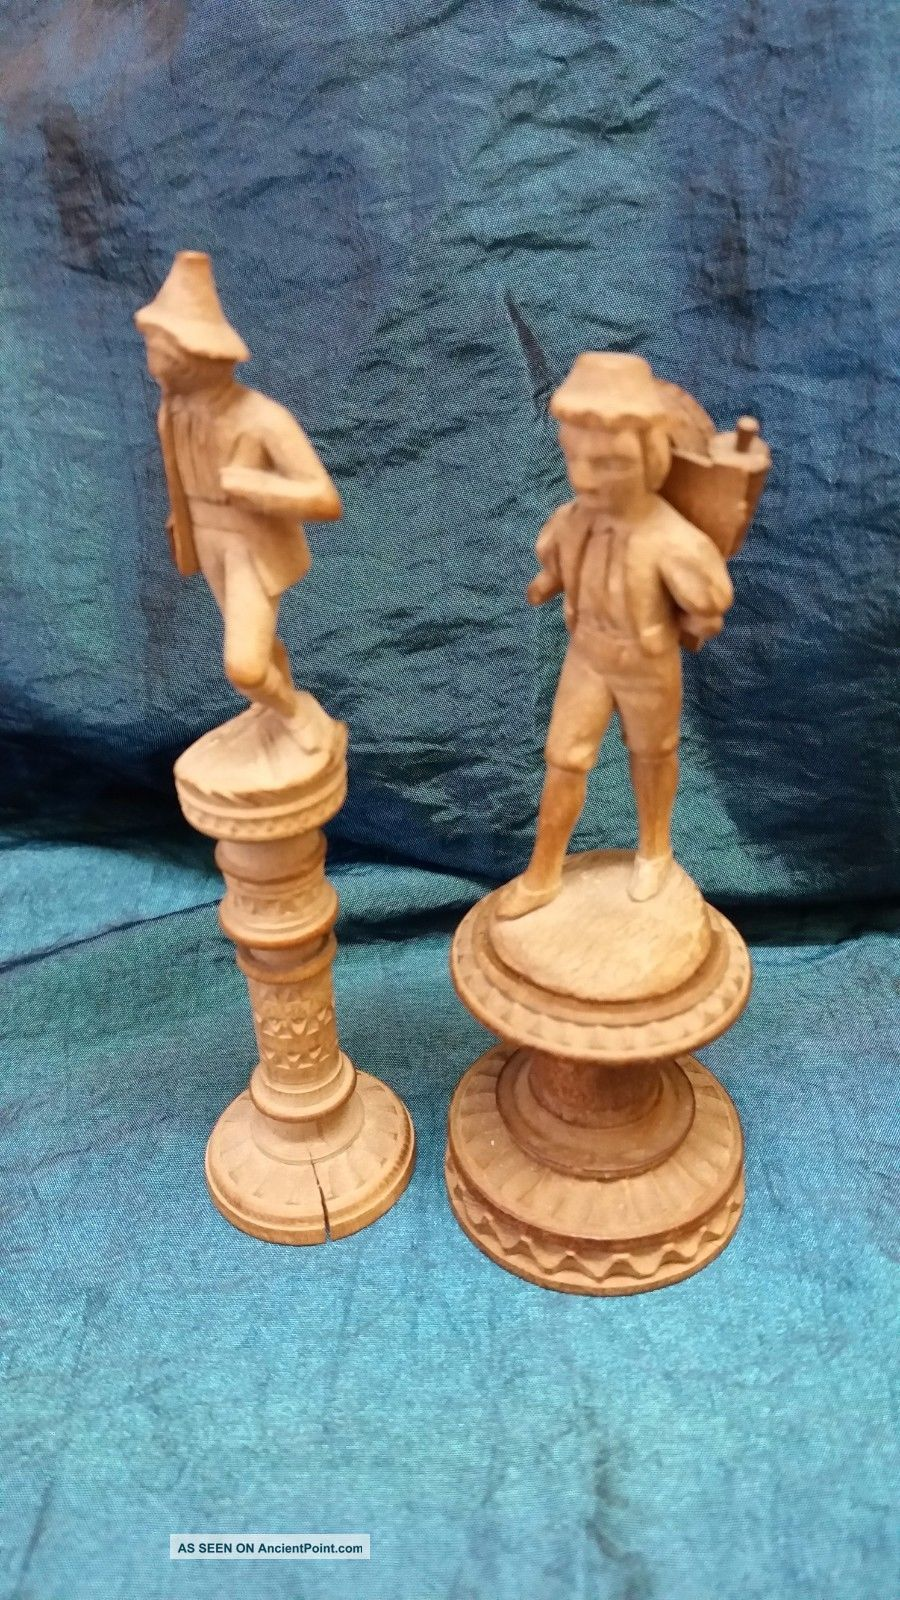 Two Antique Carved Figures - Tyrolean - 1 Needle Case & 1 Spool - Circa 1890 Needles & Cases photo